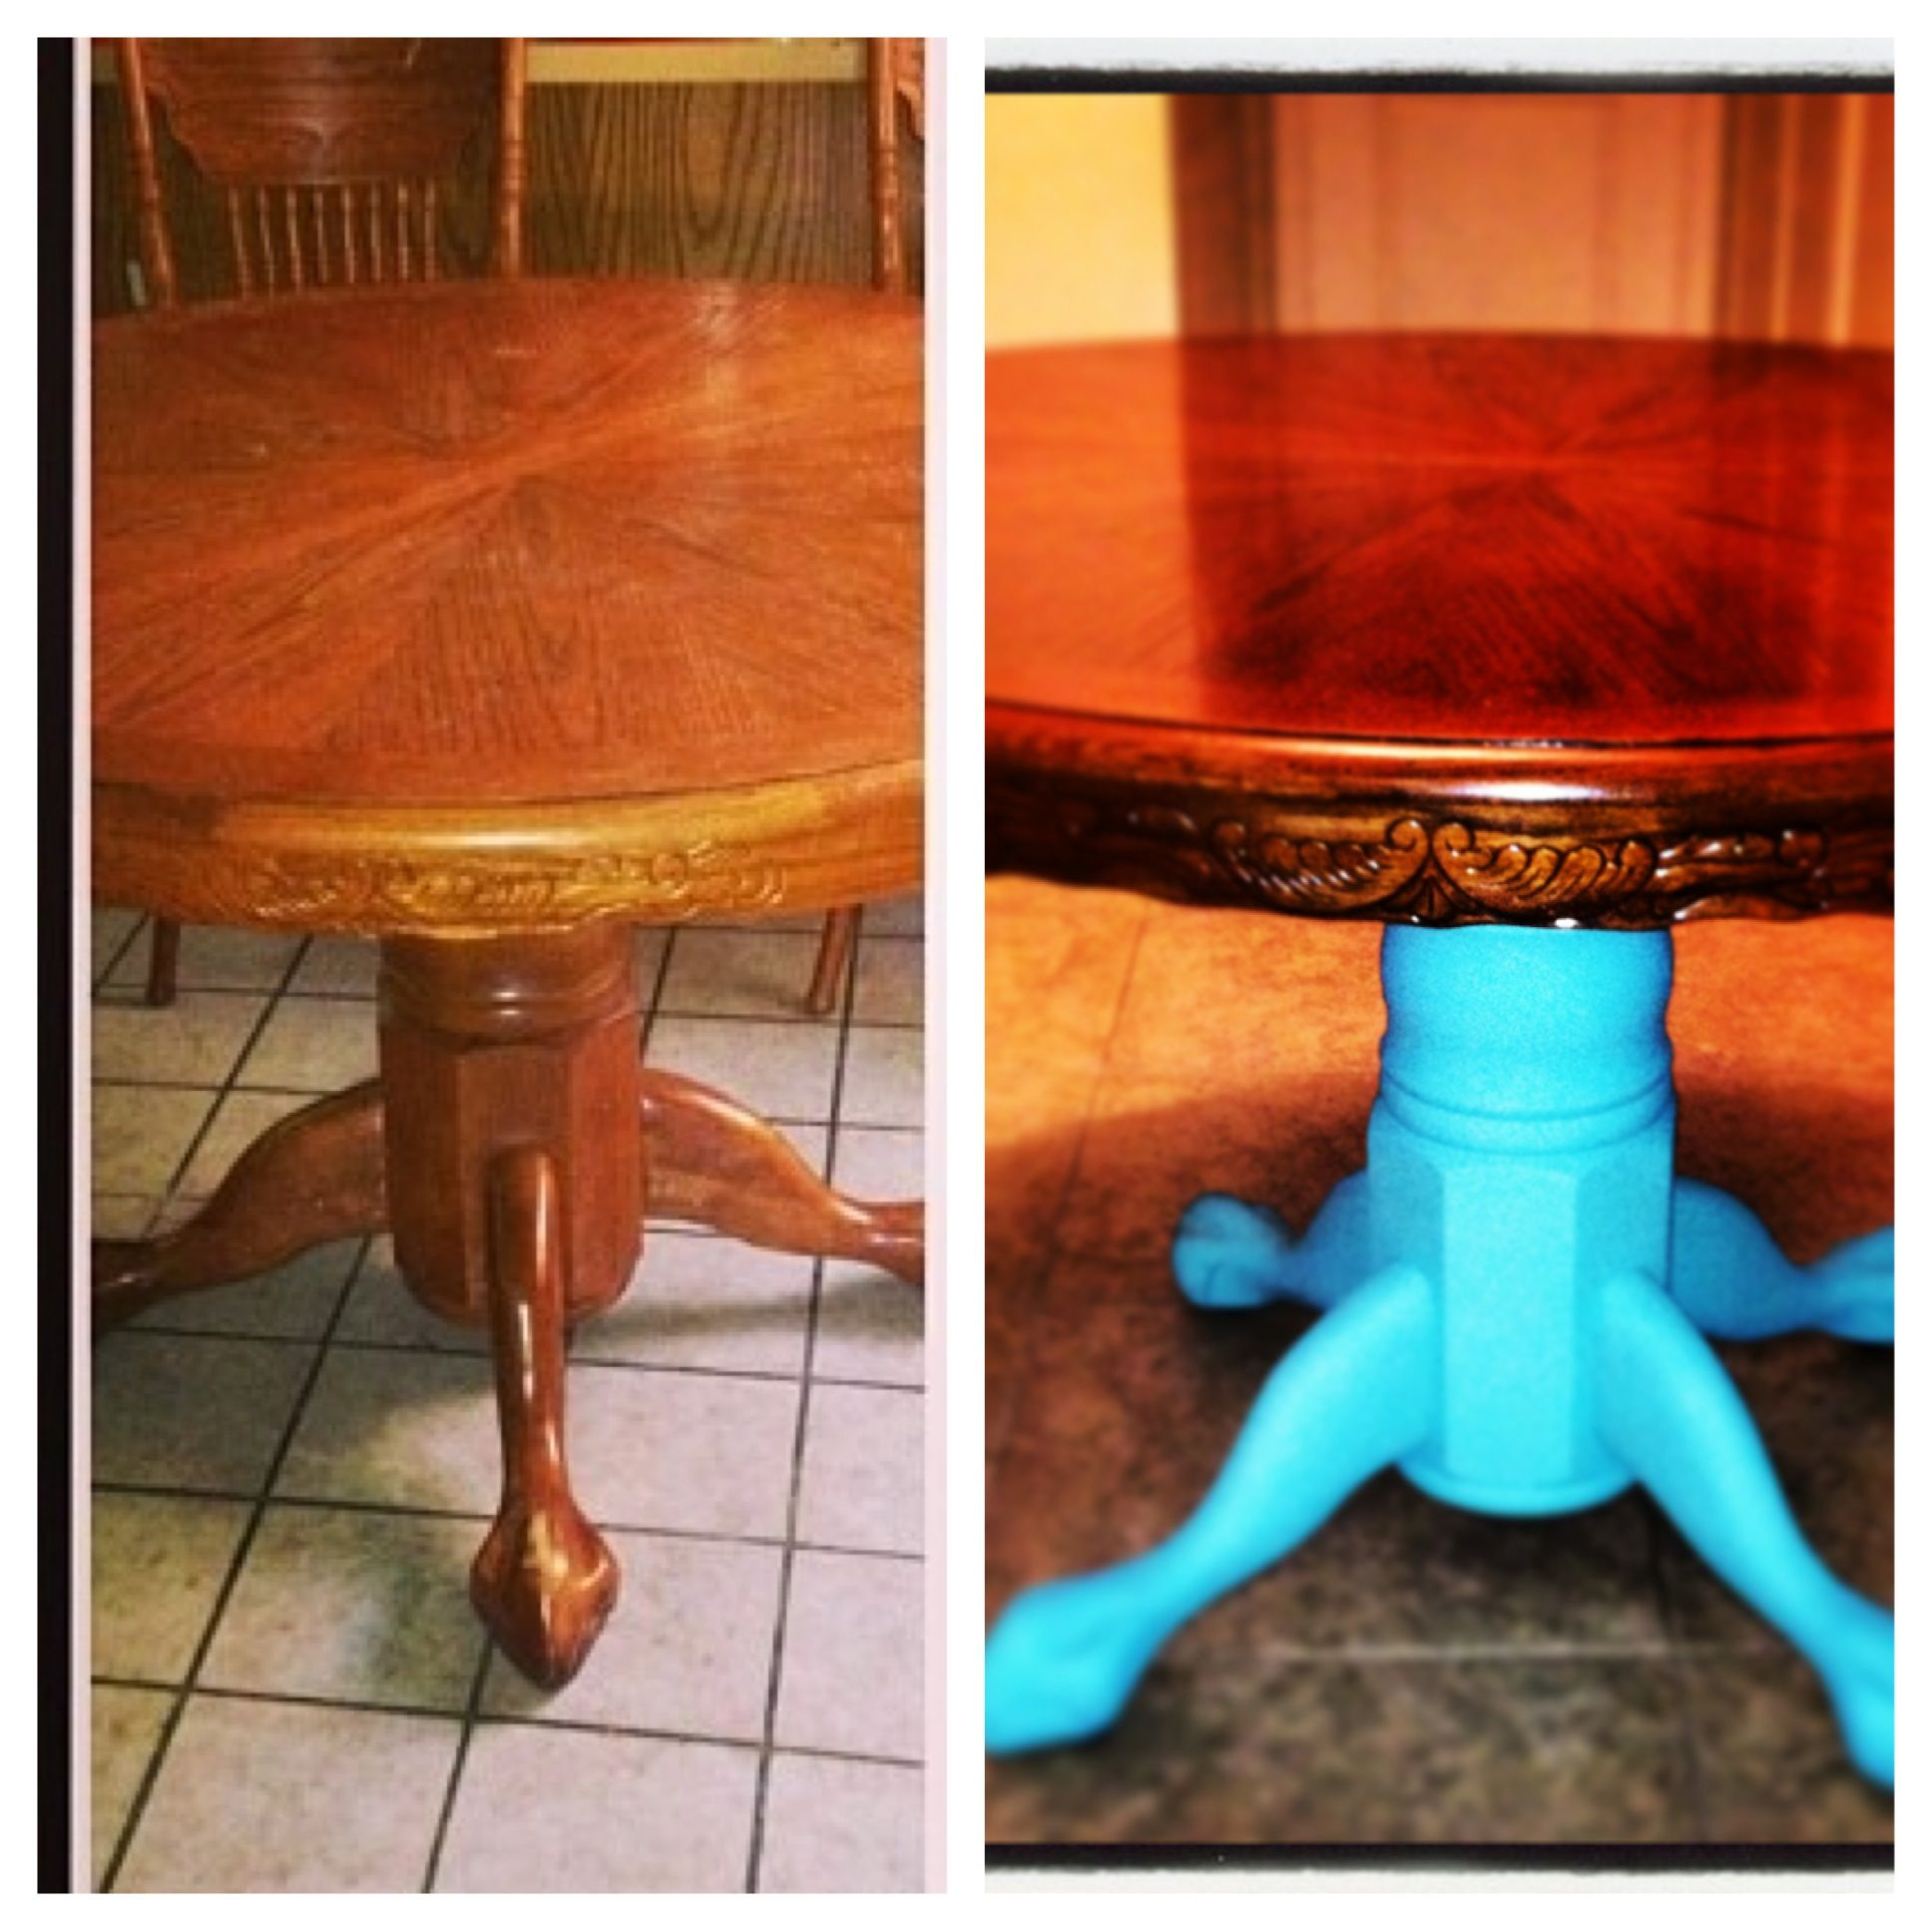 I loved my dining room table because it kinda has claw feet, but wanted to freshen it up.  I was nervous about the paint color, which was inspired by a Jelly bean and a turquoise ring I found in an antique store. I figured its just paint, I could repaint if I didn't like it. I LOVE it! And have painted other things in my house with the same paint, all with different color results! My mismatched chairs will all be painted different colors. (Pink, orange etc) I'm obsessed with boho styles.